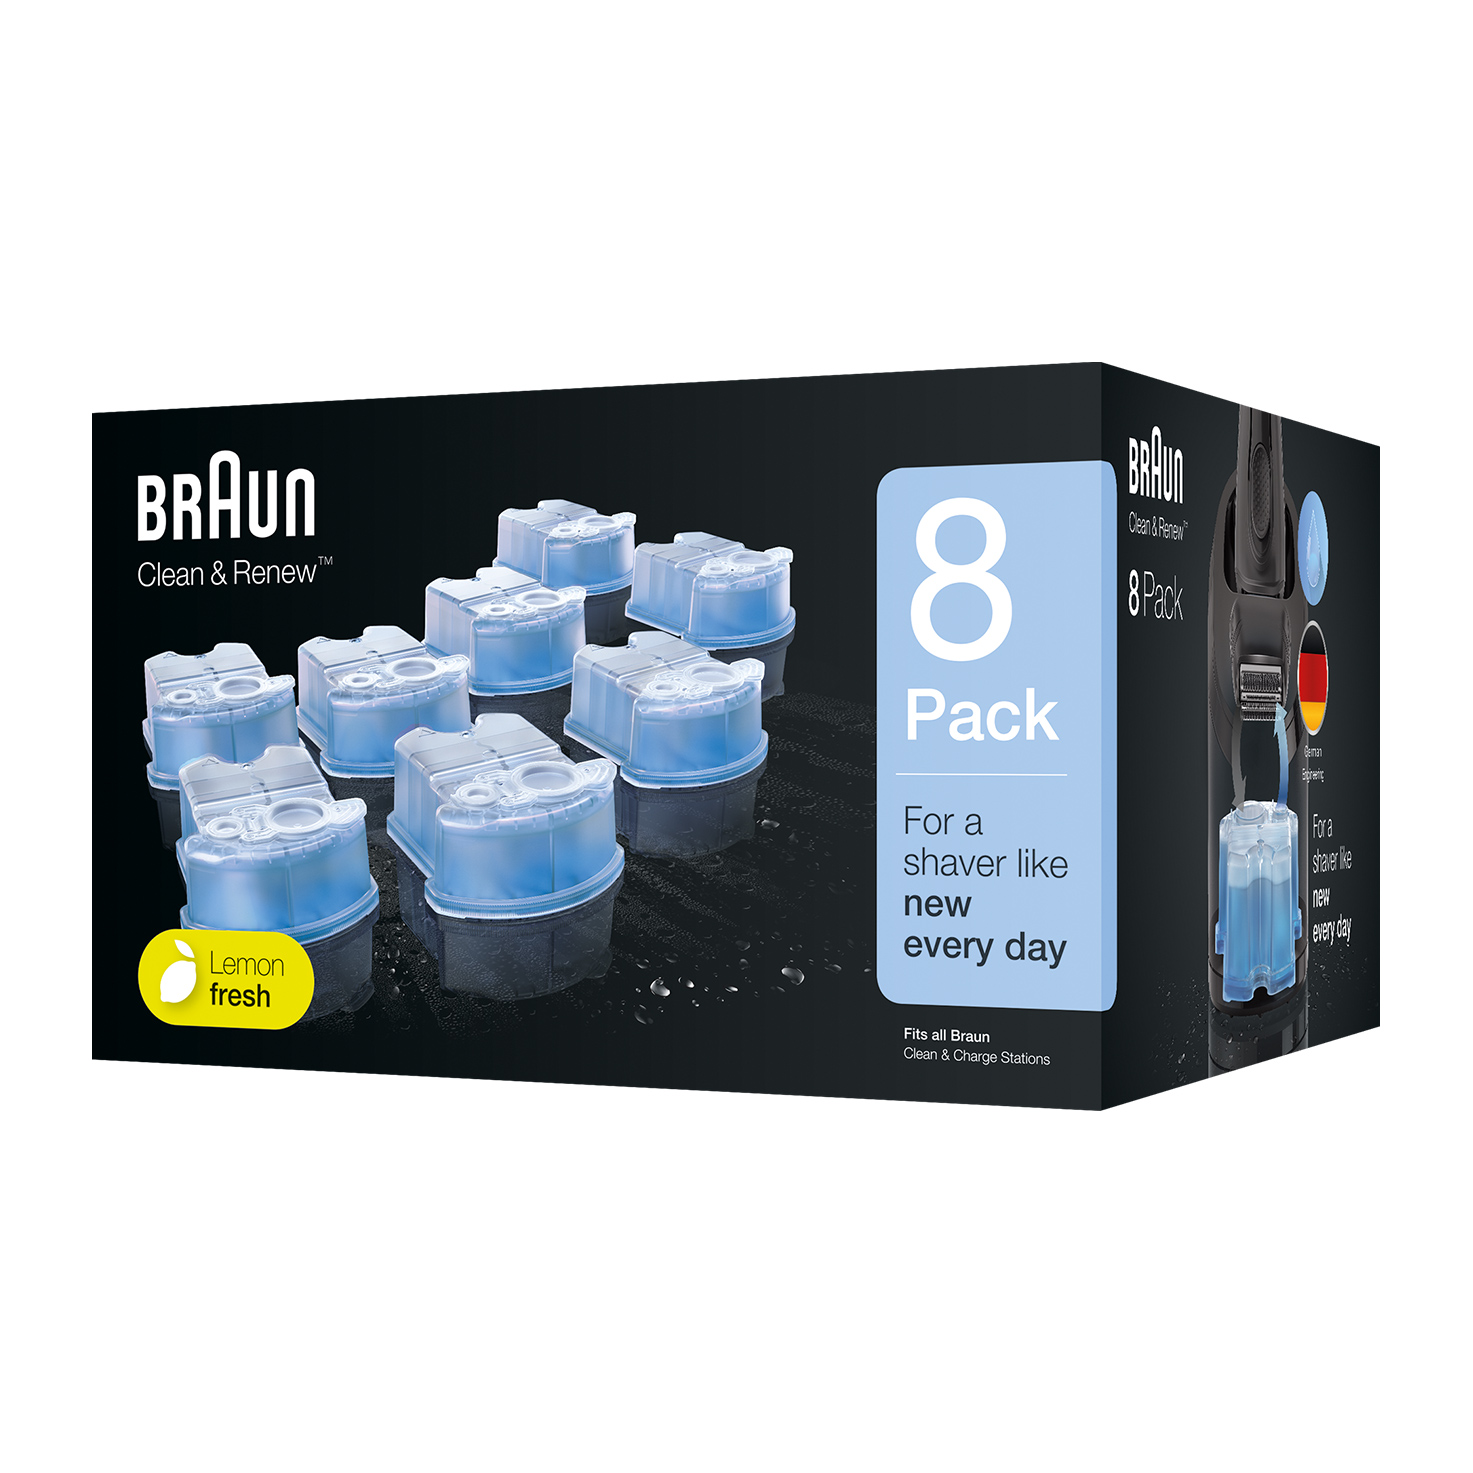 Braun Clean & Renew refill cartridges  CCR - 8 Pack